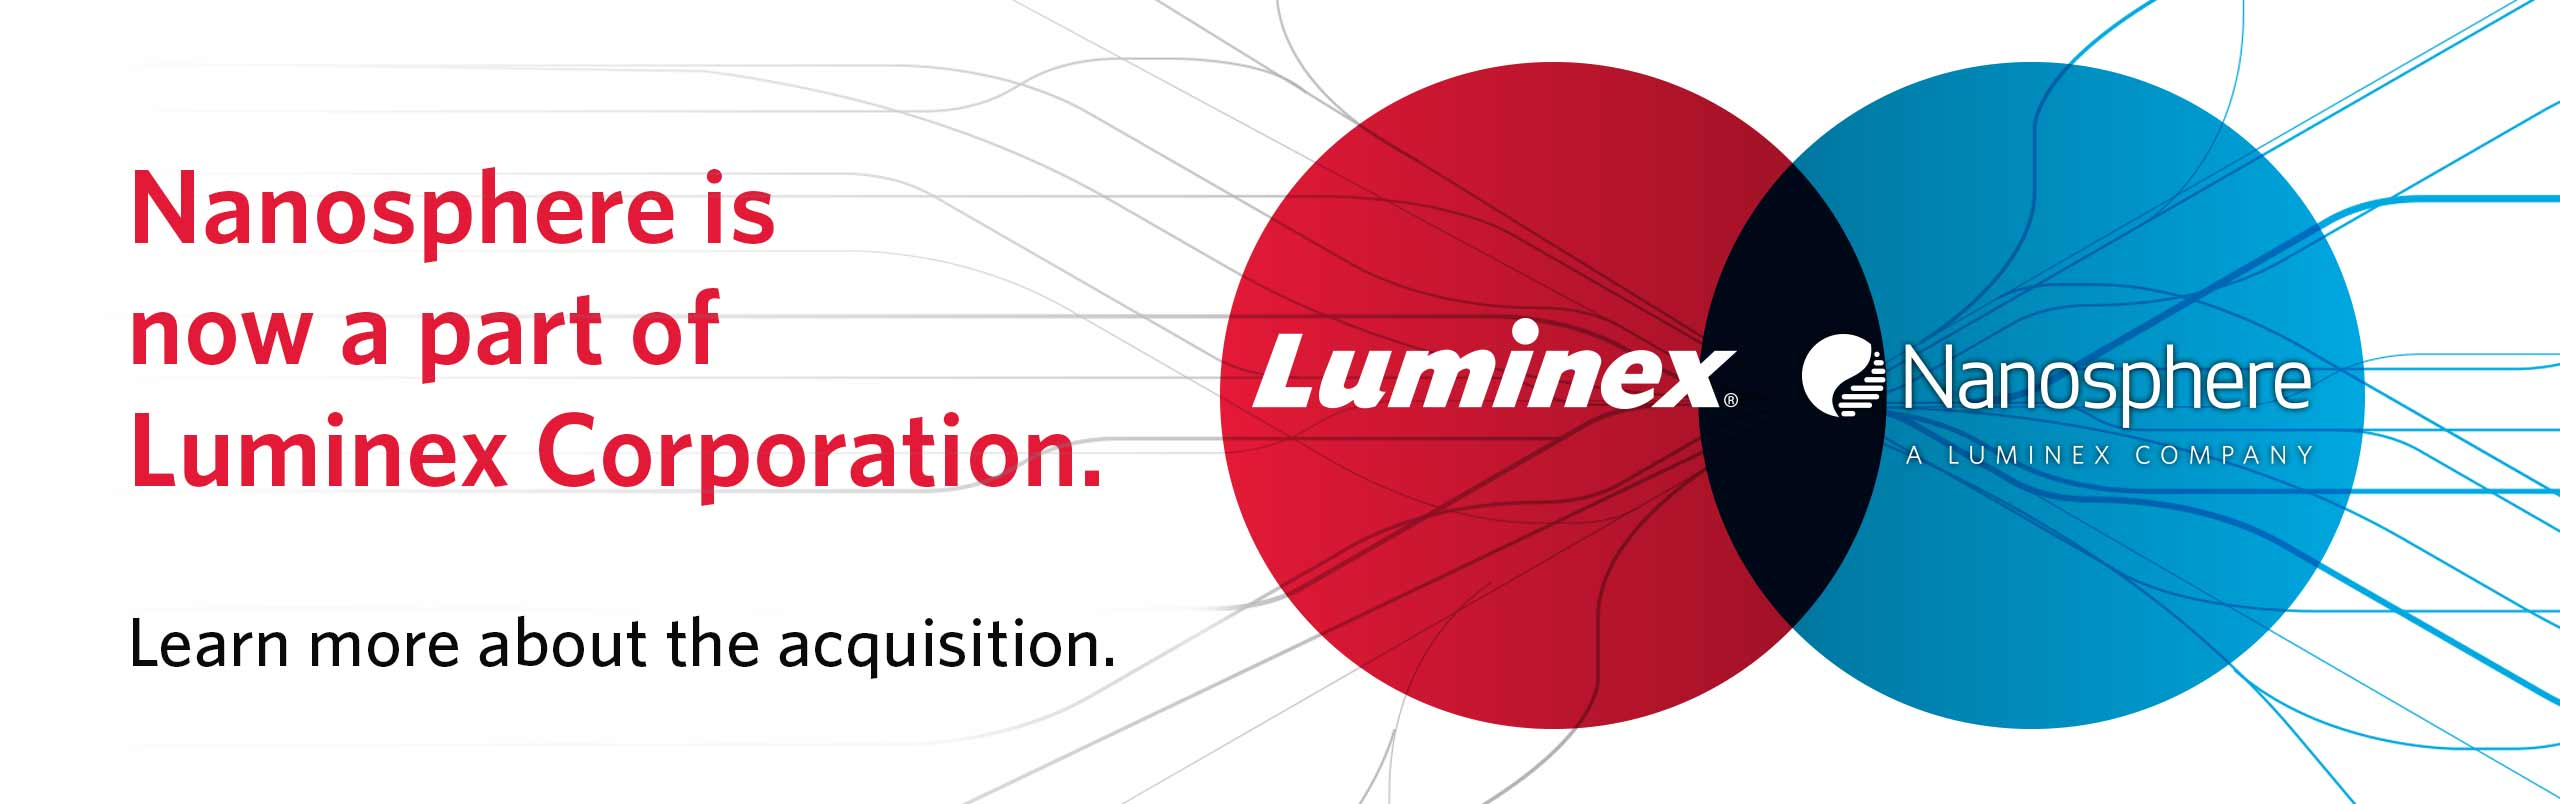 Nanosphere is now a part of Luminex Corporation